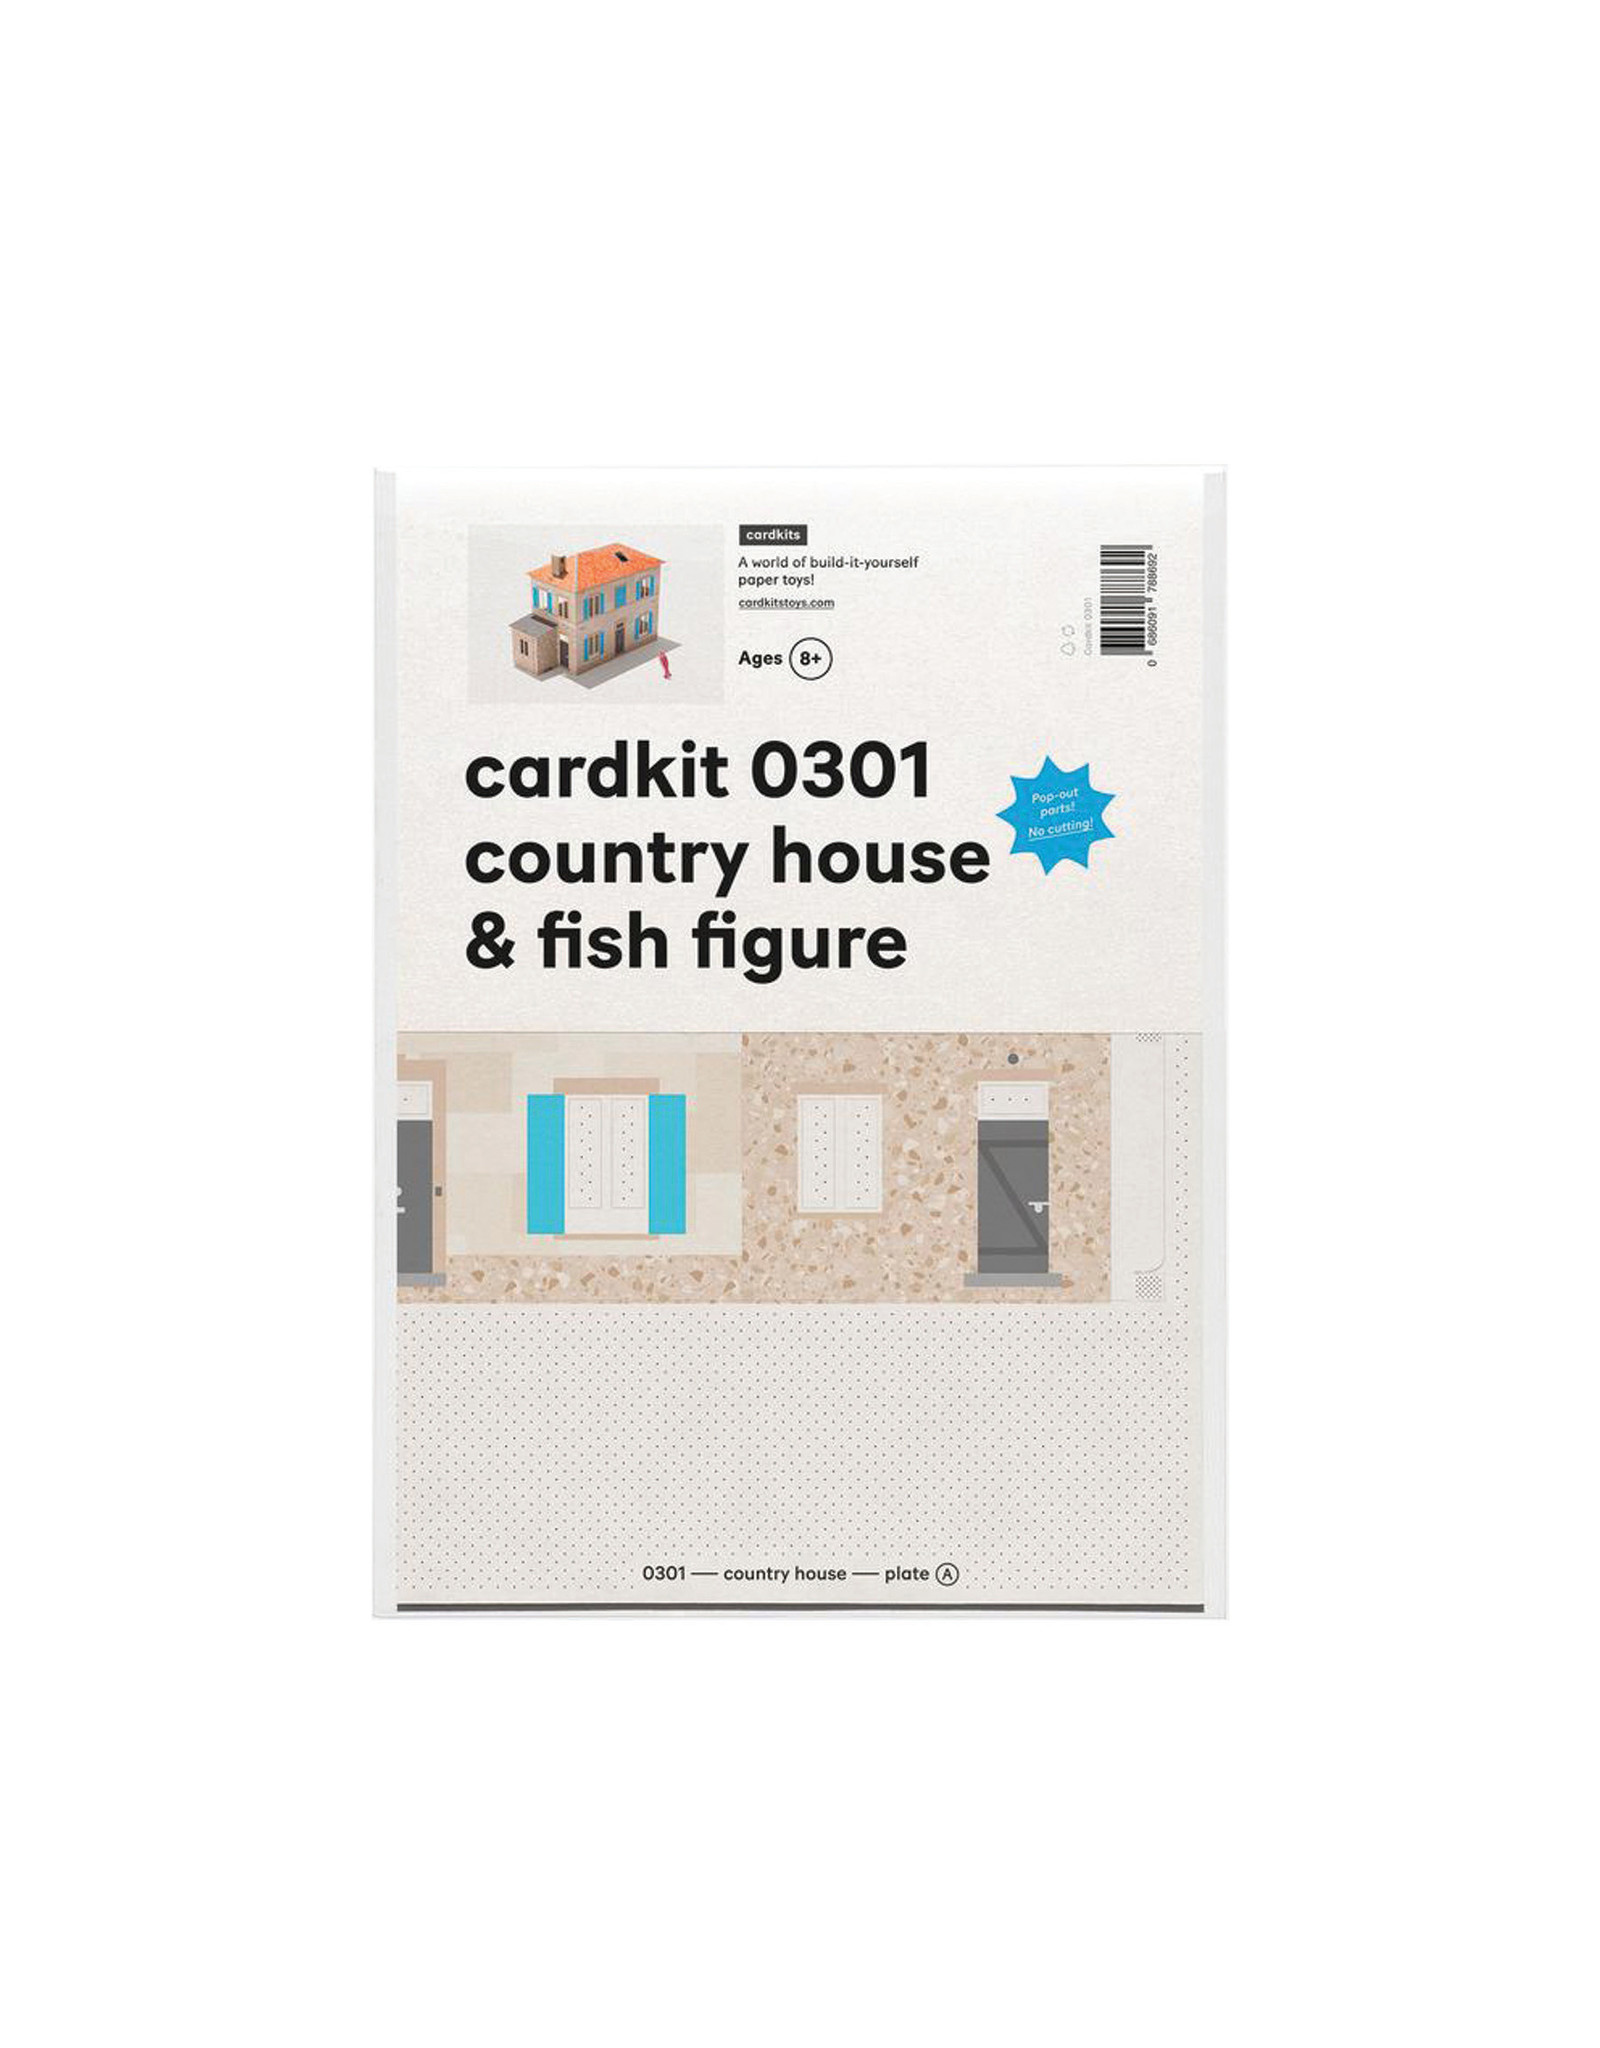 cardkit 0301: country house & fish figure